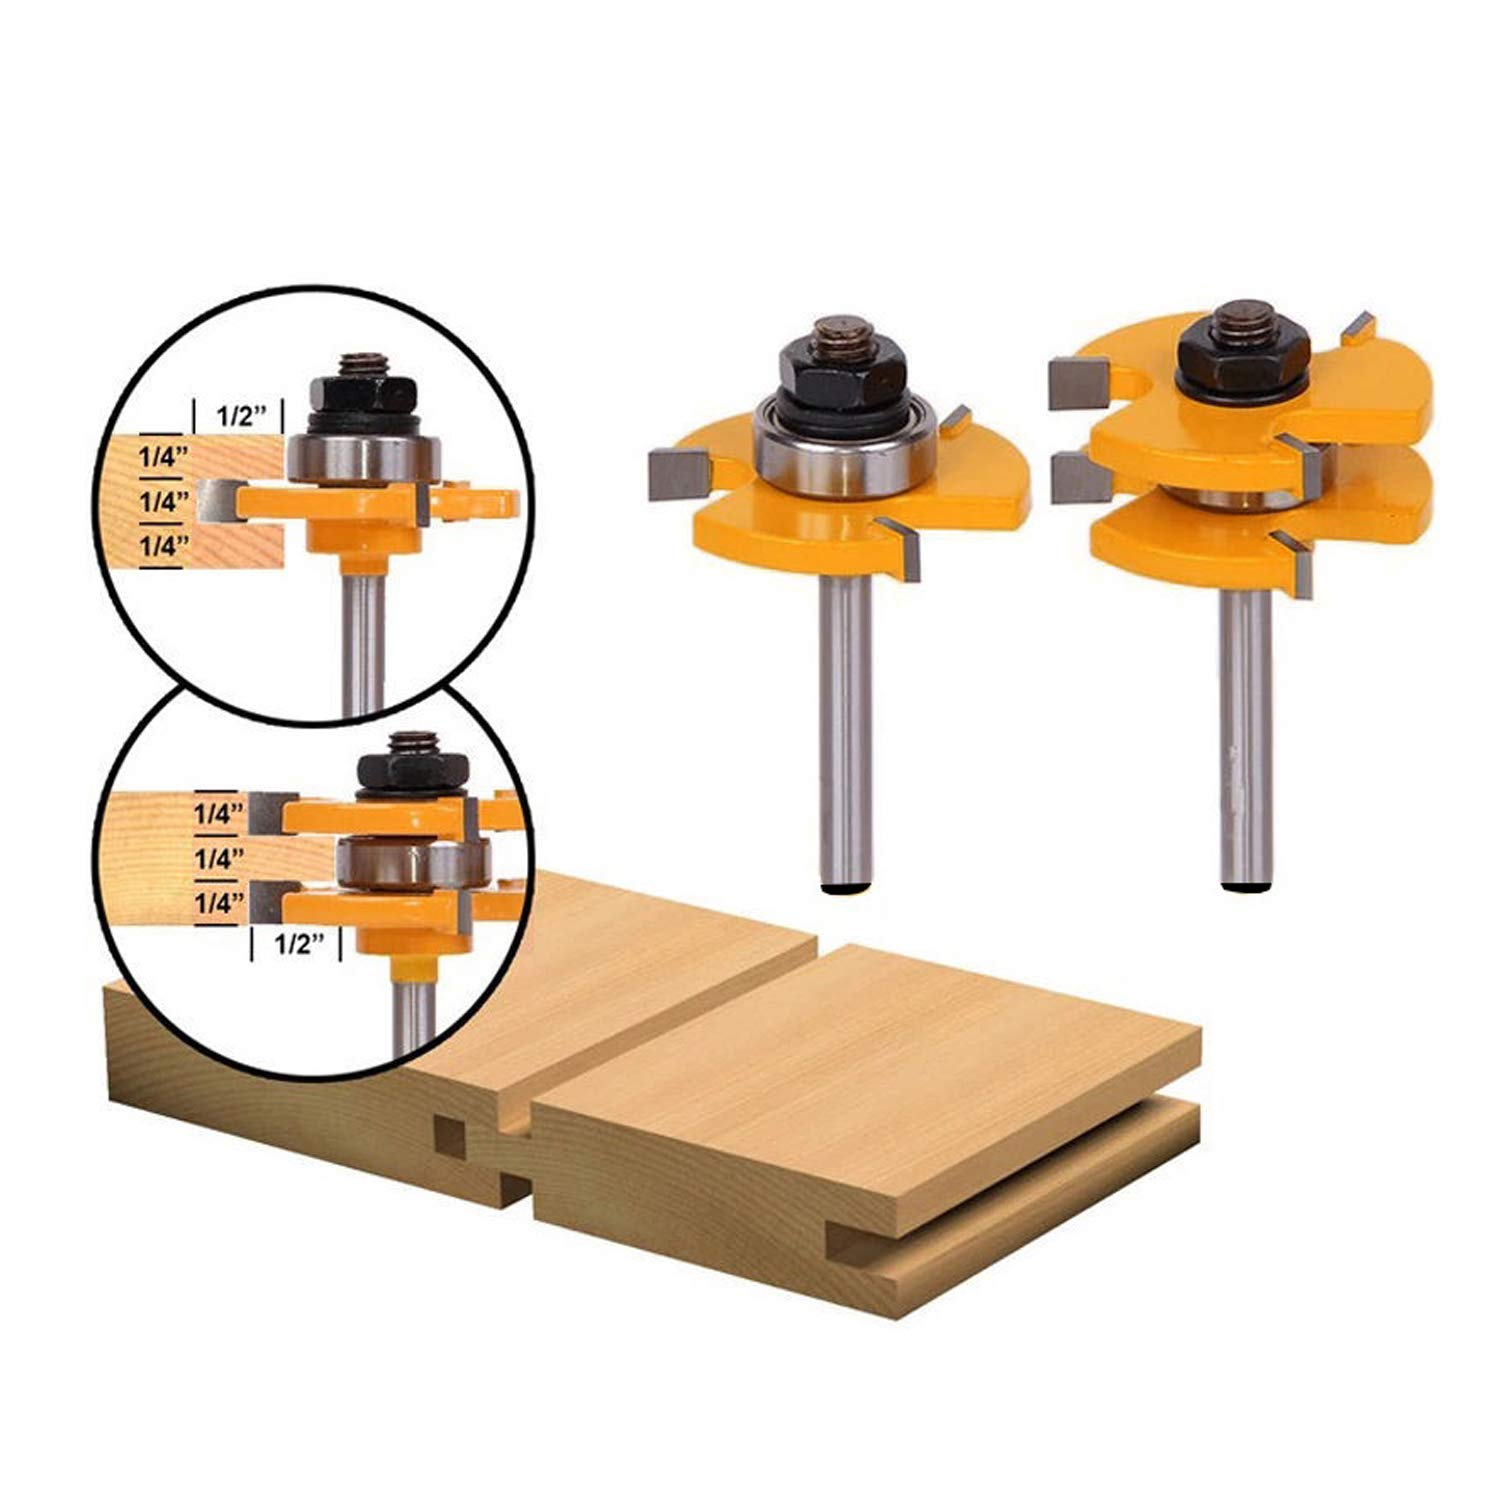 LoveDeal 1/4 Inch Shank Tongue and Groove Router Bit Set, 3 Teeth T Shape Molding Wood Milling Cutter, Adjustable Wood Door Flooring Woodworking Tool, for Kitchen, Bathroom, Cabinet(2 PCS) by LoveDeal (Image #1)